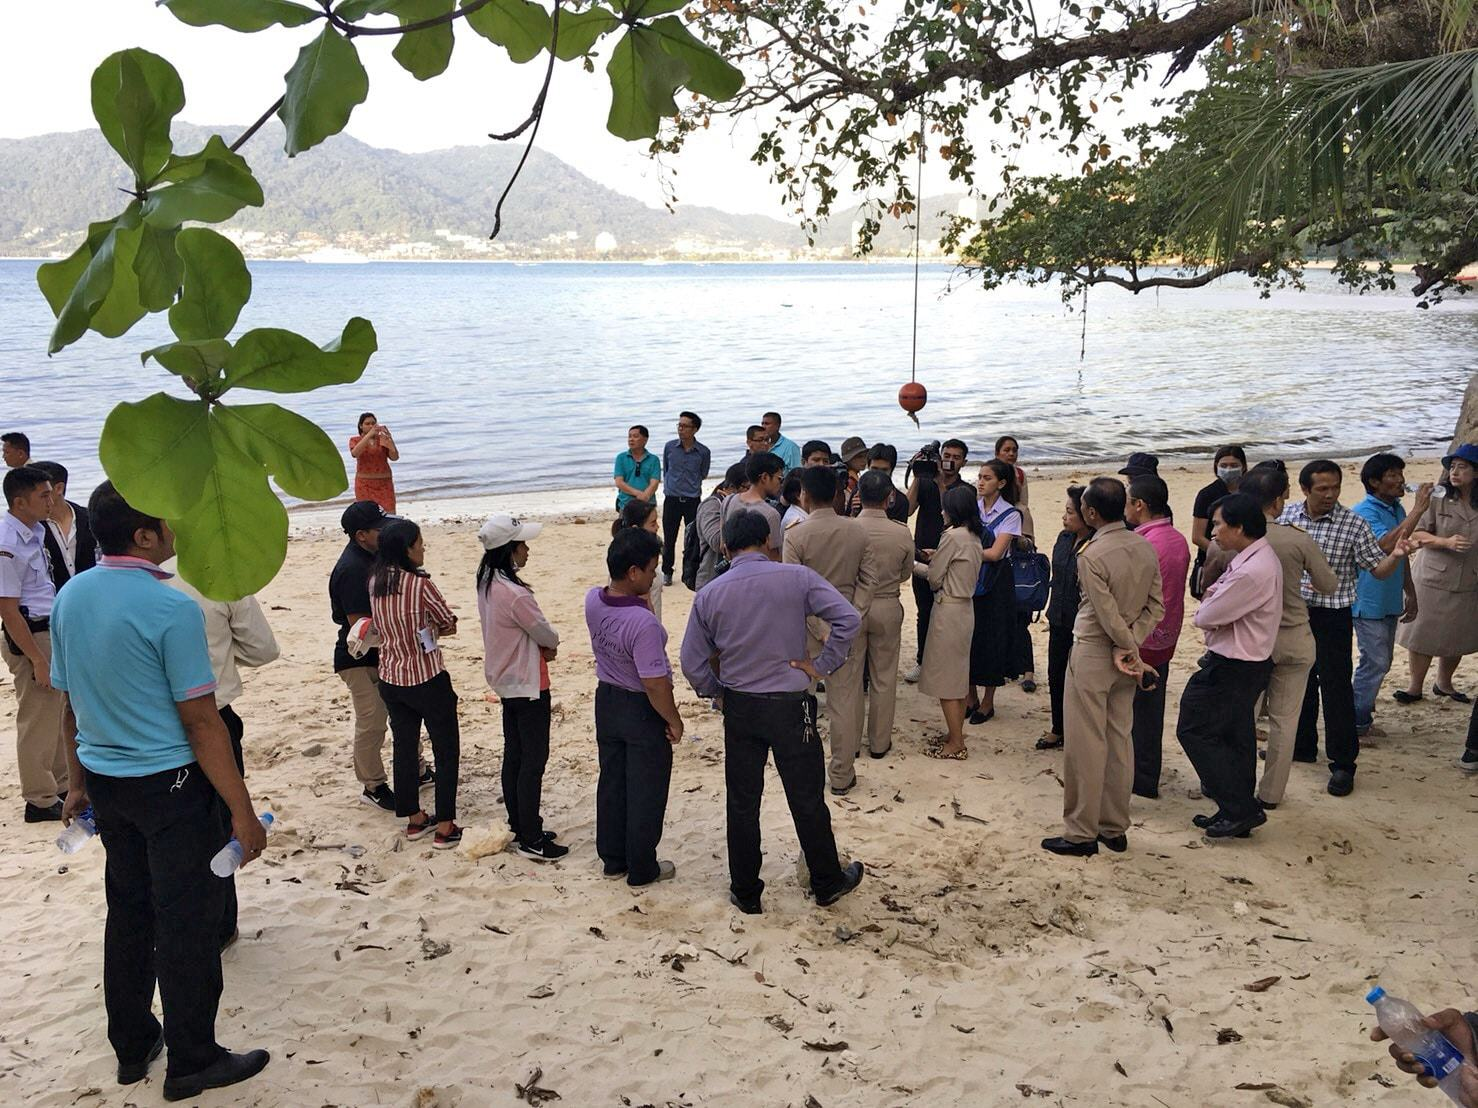 Phuket's Governor visits Tritrang Beach to inspect action over effluent | The Thaiger